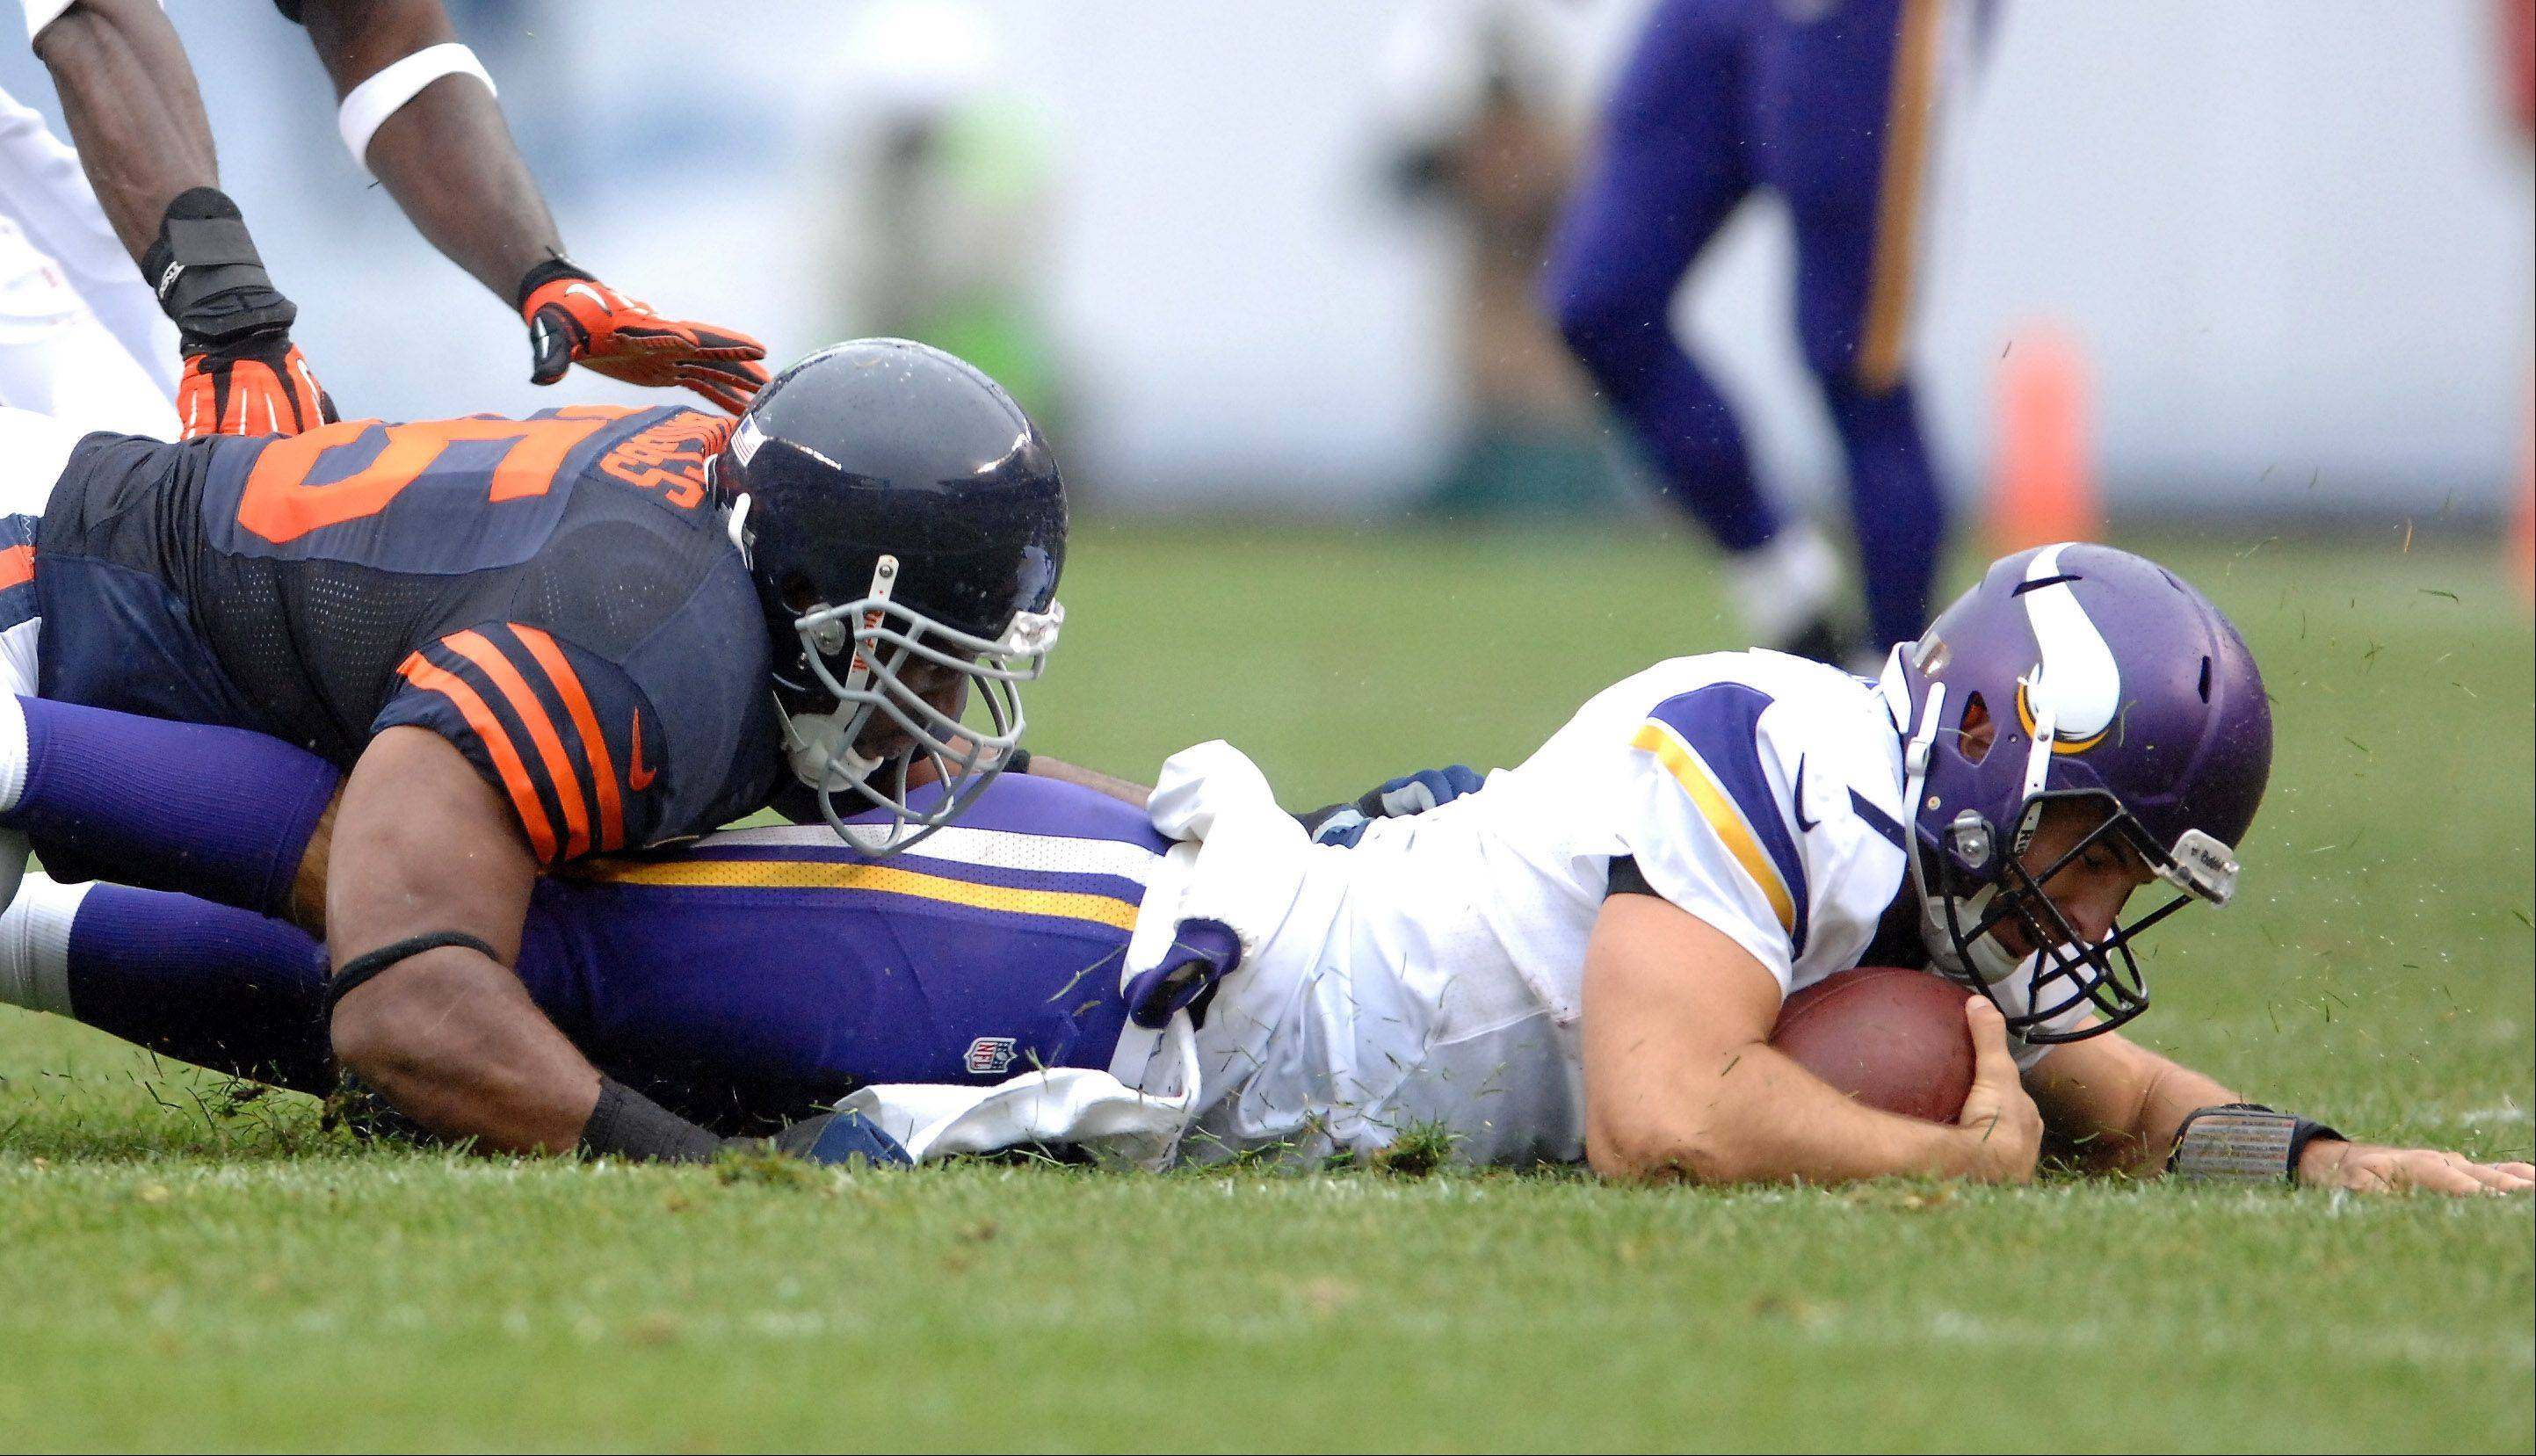 Chicago Bears outside linebacker Lance Briggs (55) brings down Minnesota Vikings quarterback Christian Ponder (7) during Sunday's game at Soldier Field in Chicago.